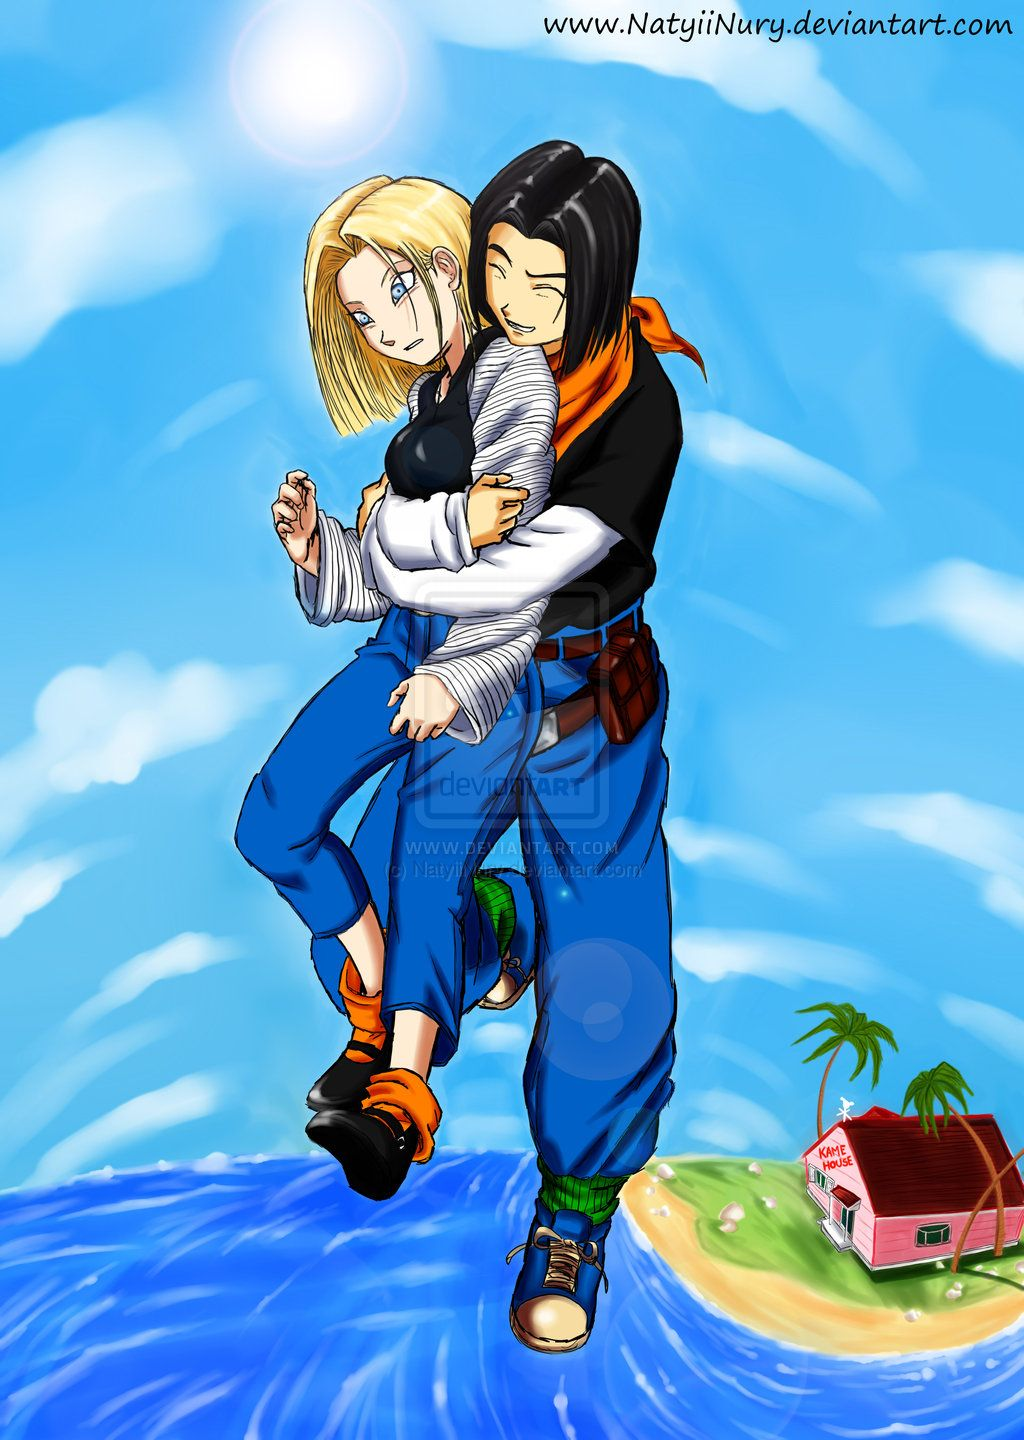 Android 18 and 17 ♥ by NatyiiNury.deviantart.com | DBZ ...